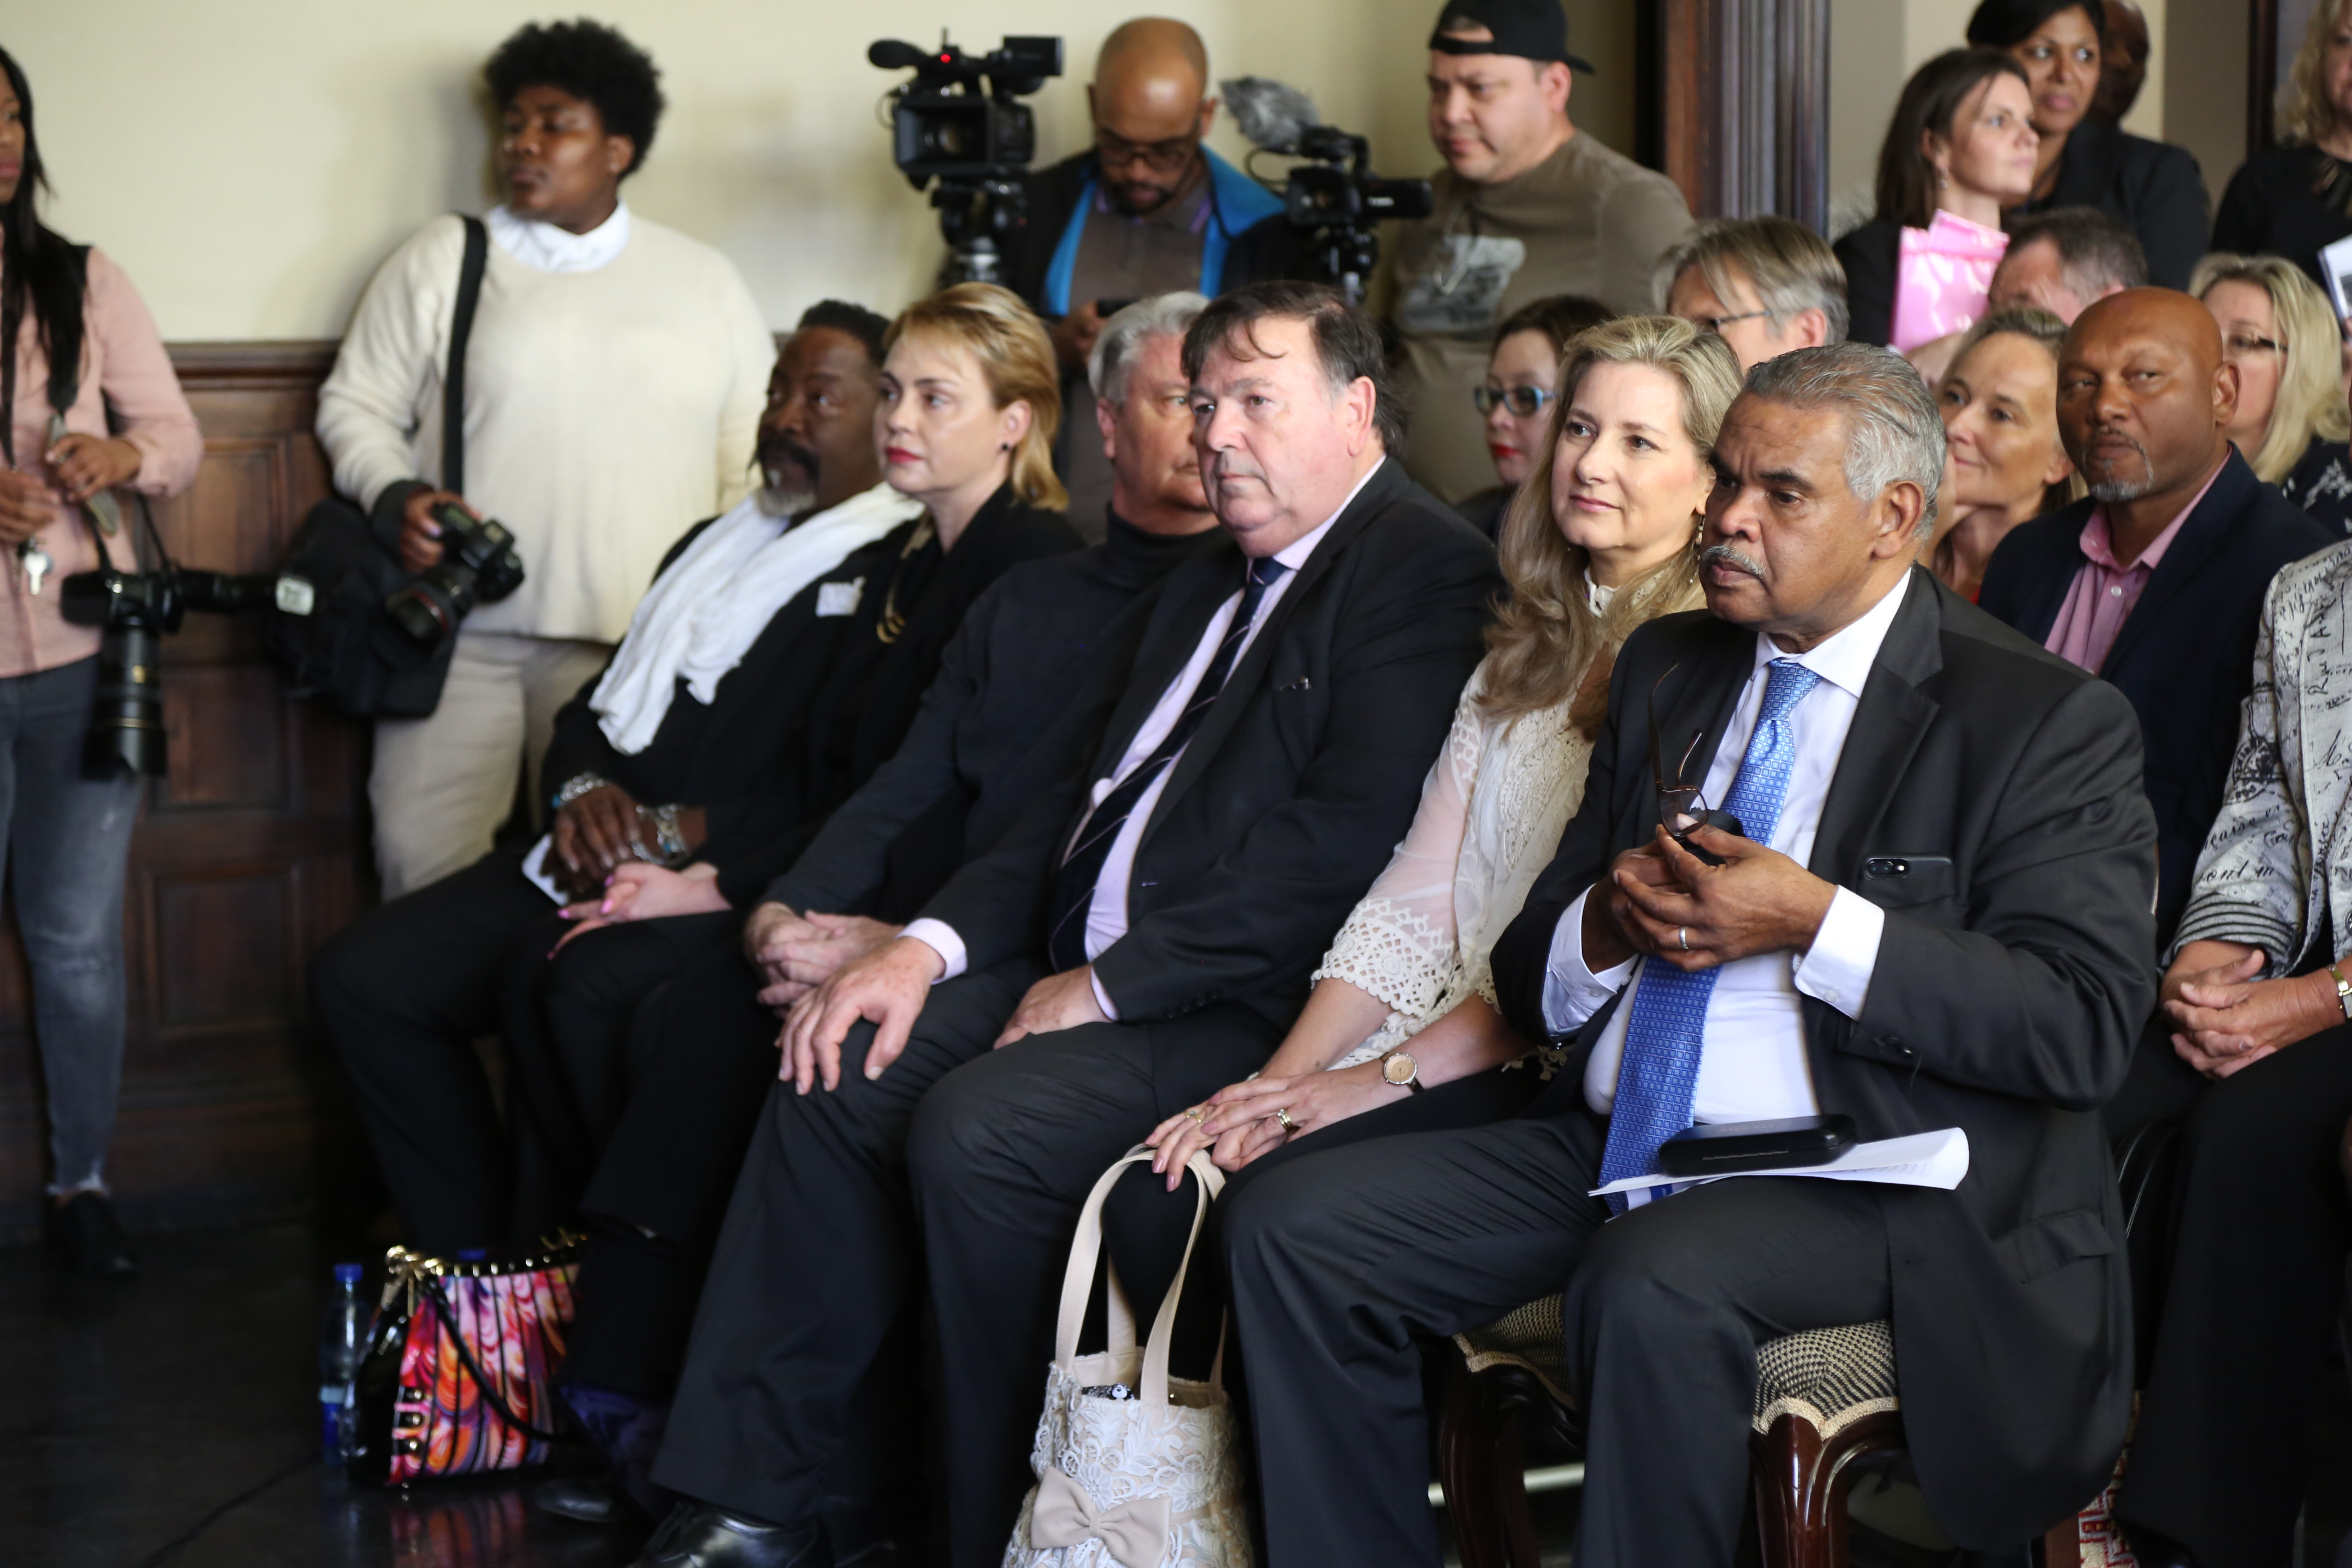 Dali Tambo and his wife among the delegates at the unveiling